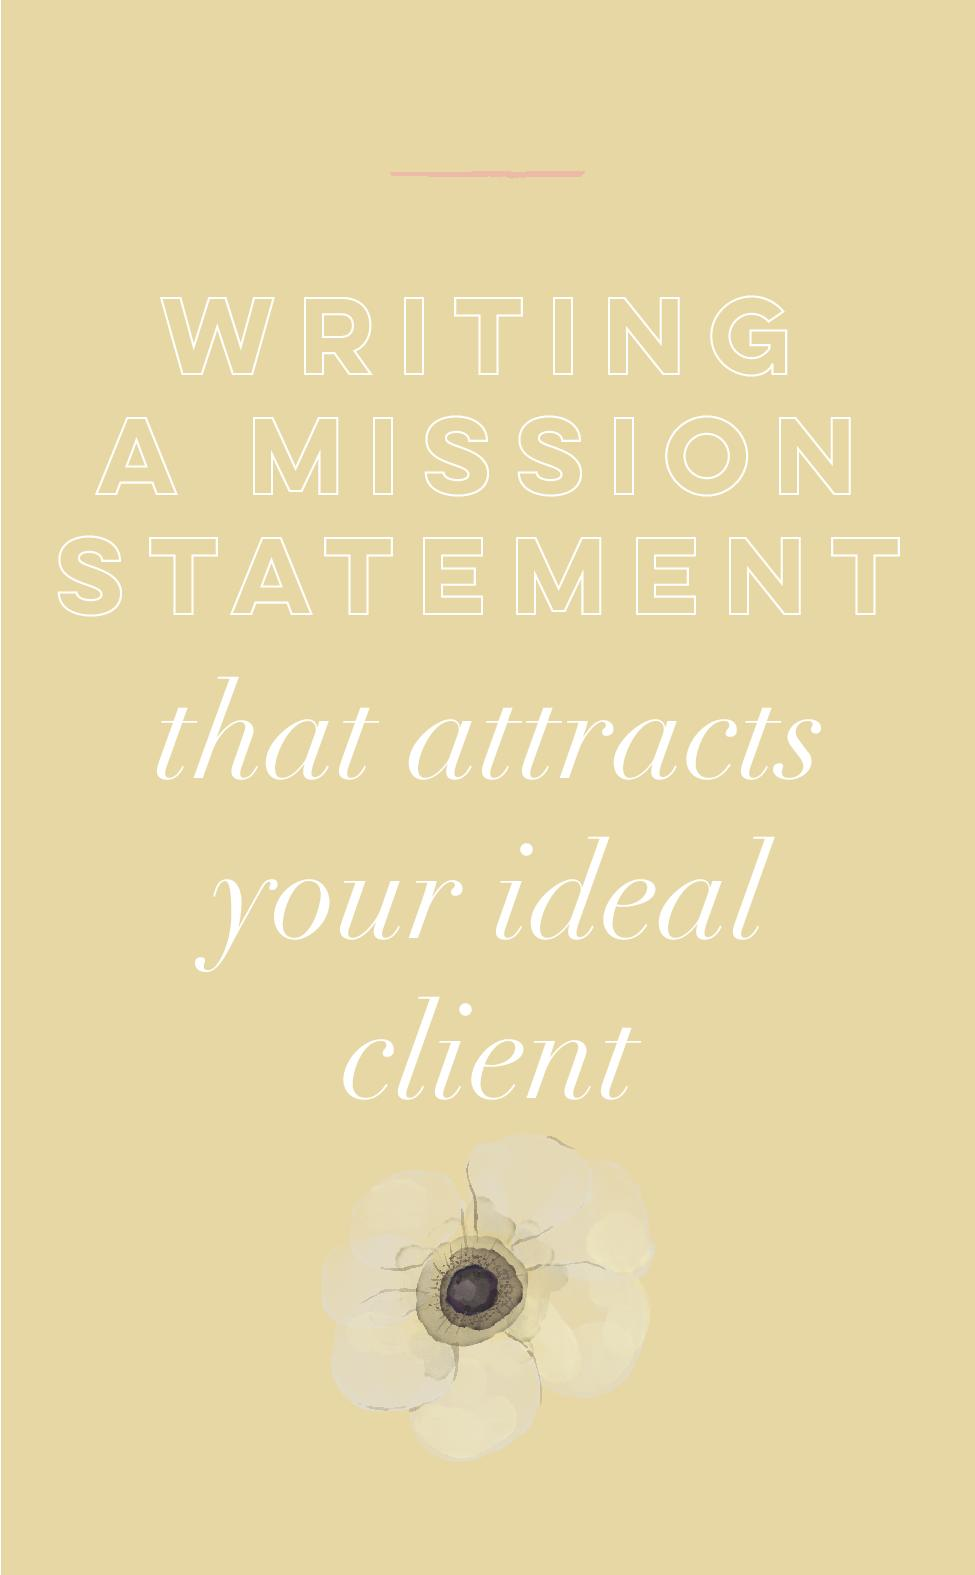 Writing A Mission Statementthat Attracts Your Ideal Client.jpg